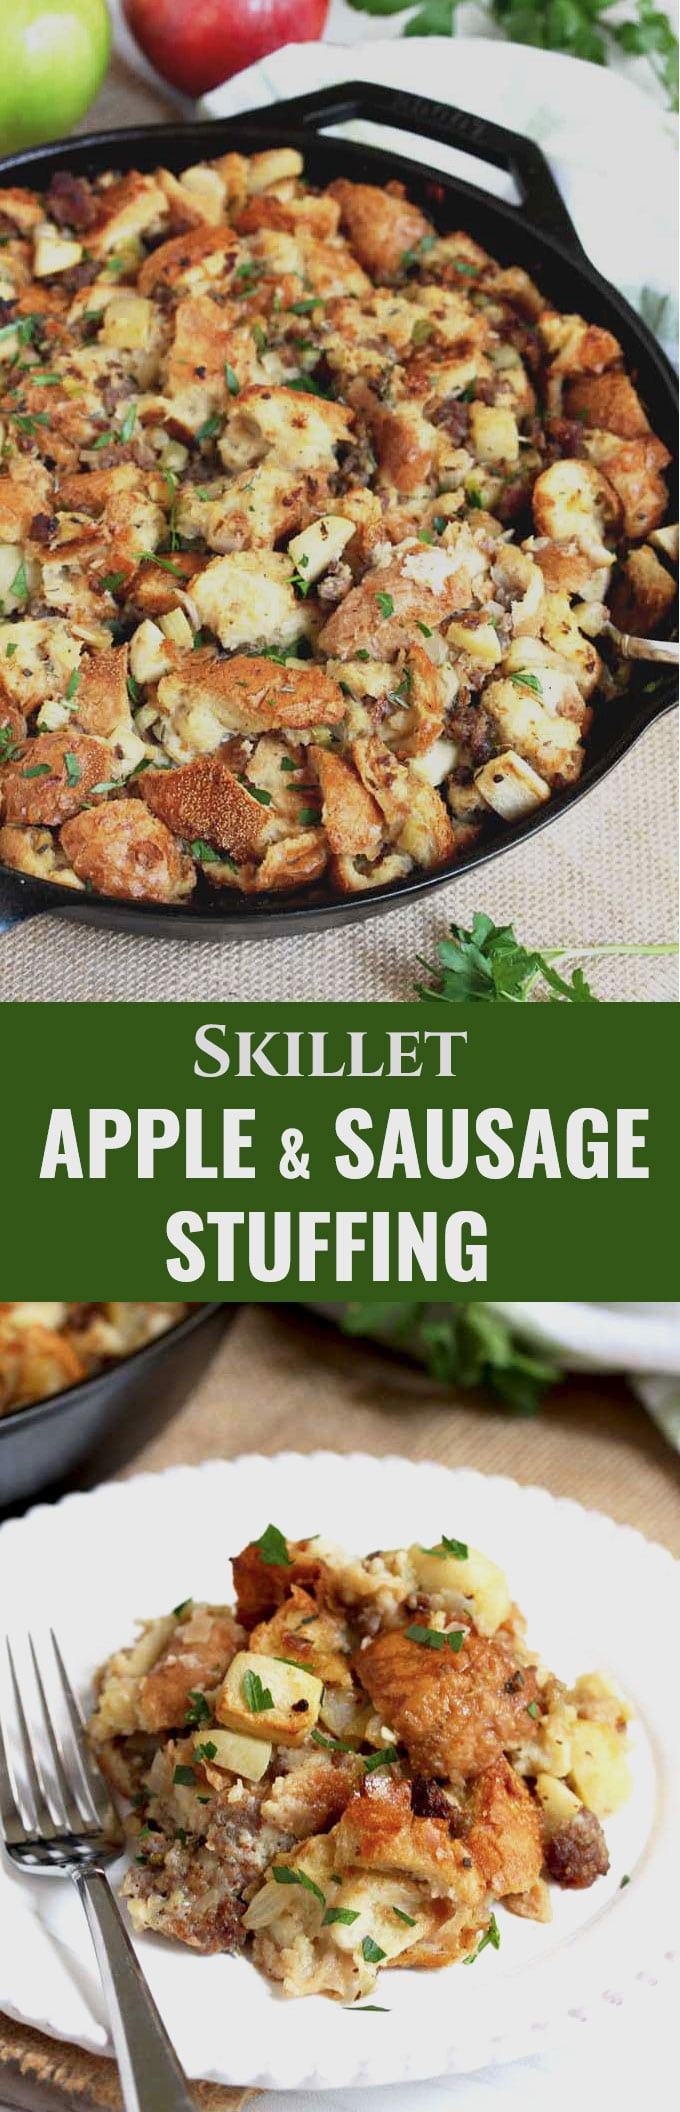 This Apple and Sausage Stuffing recipe is incredibly tasty and easily made in one skillet. Loaded with apples, sausage and fresh herbs, this Thanksgiving dressing is sure to become a family favorite! #appleweek #sidedish #sausage #thanksgiving #sponsored